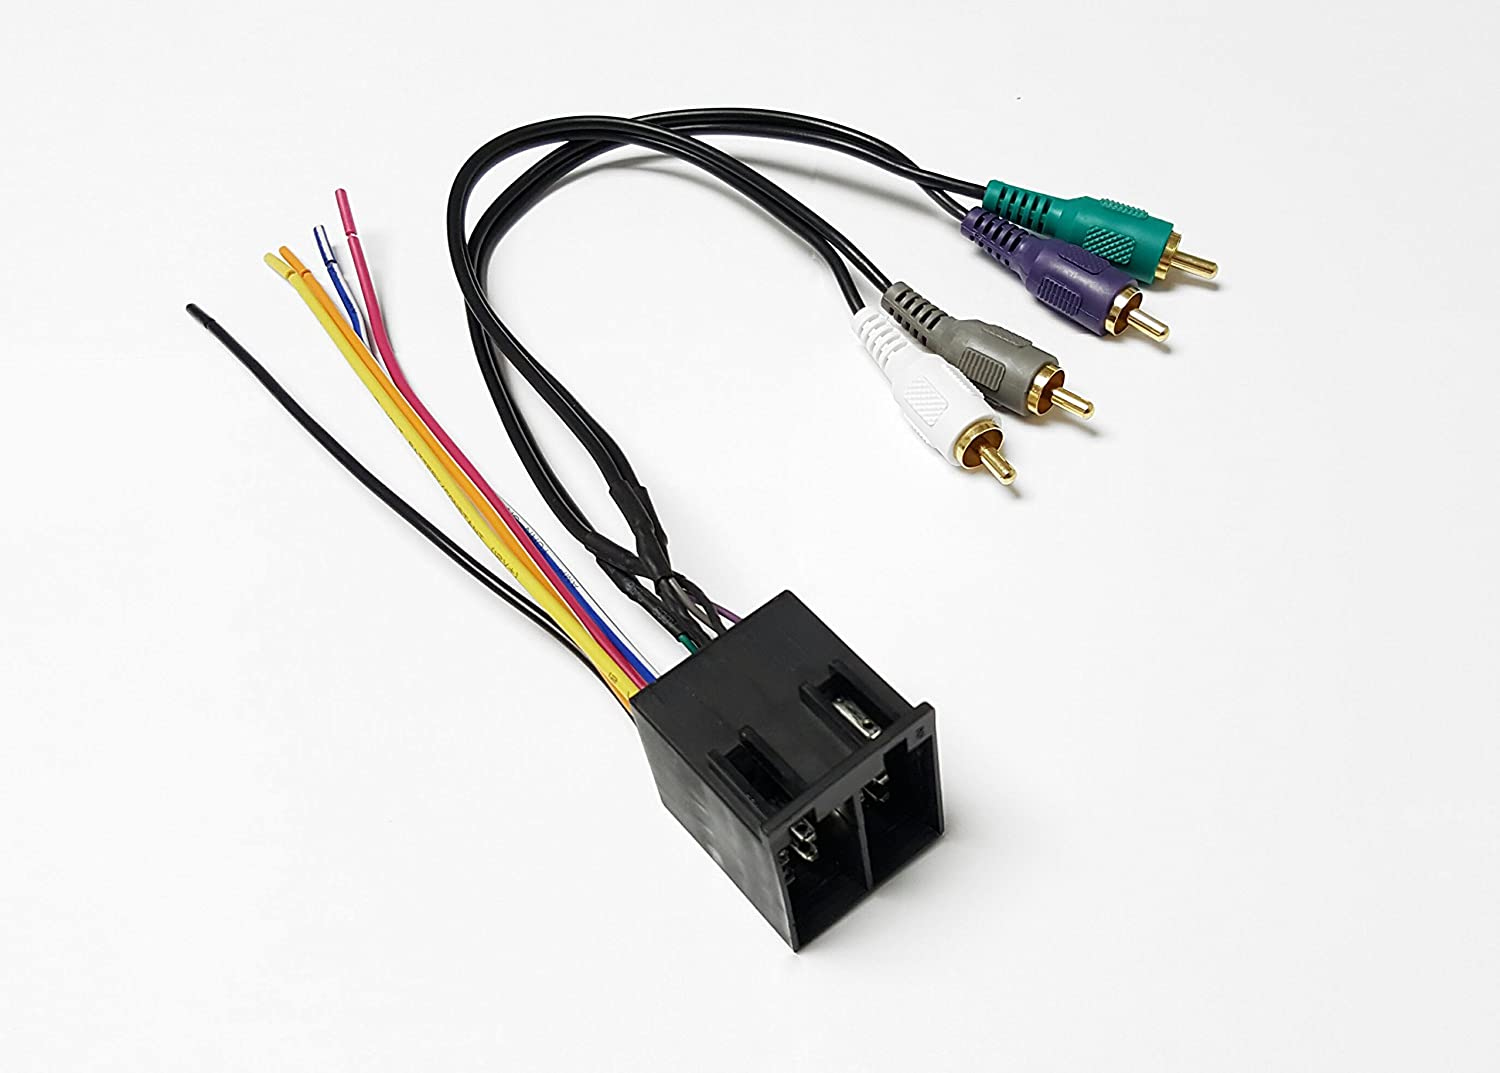 Mercedes Radio Wiring Harness from images-na.ssl-images-amazon.com